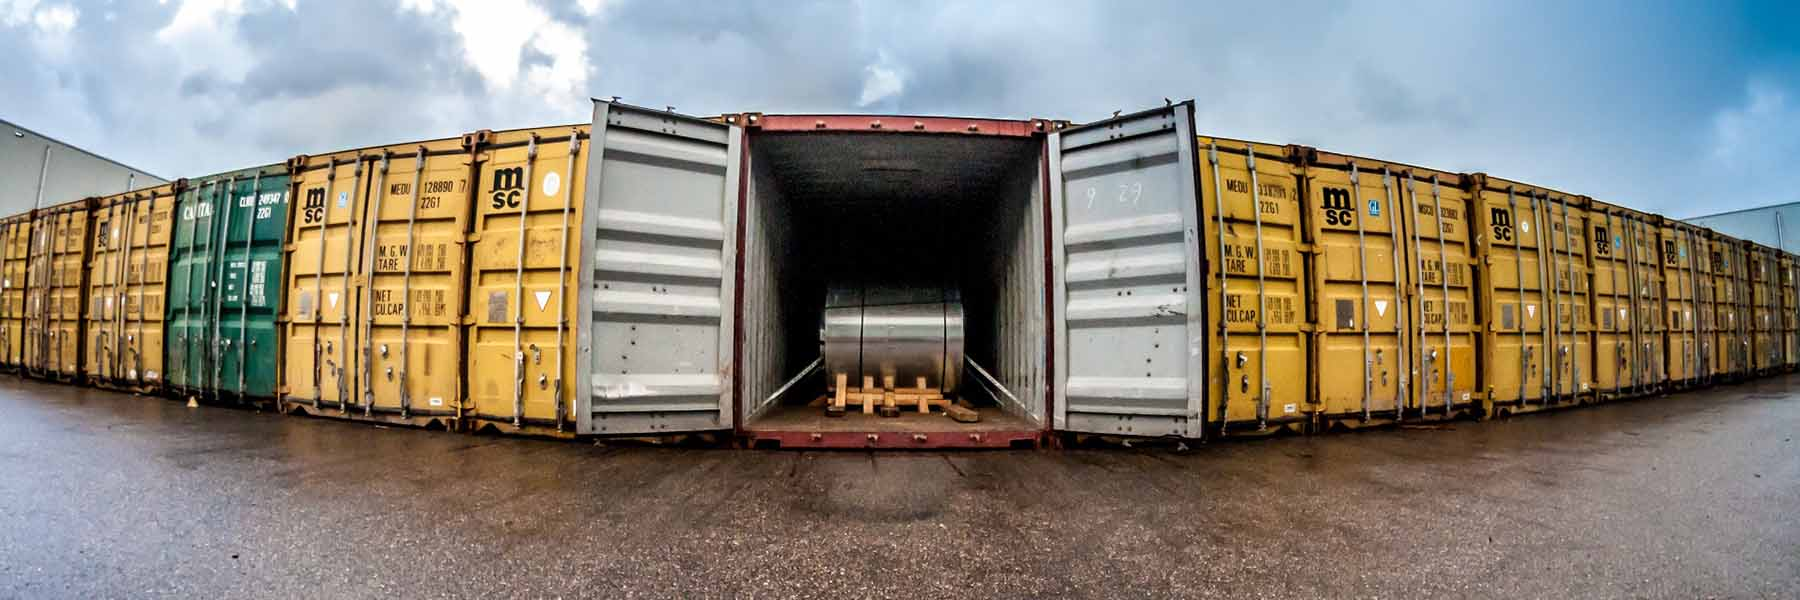 container vracht